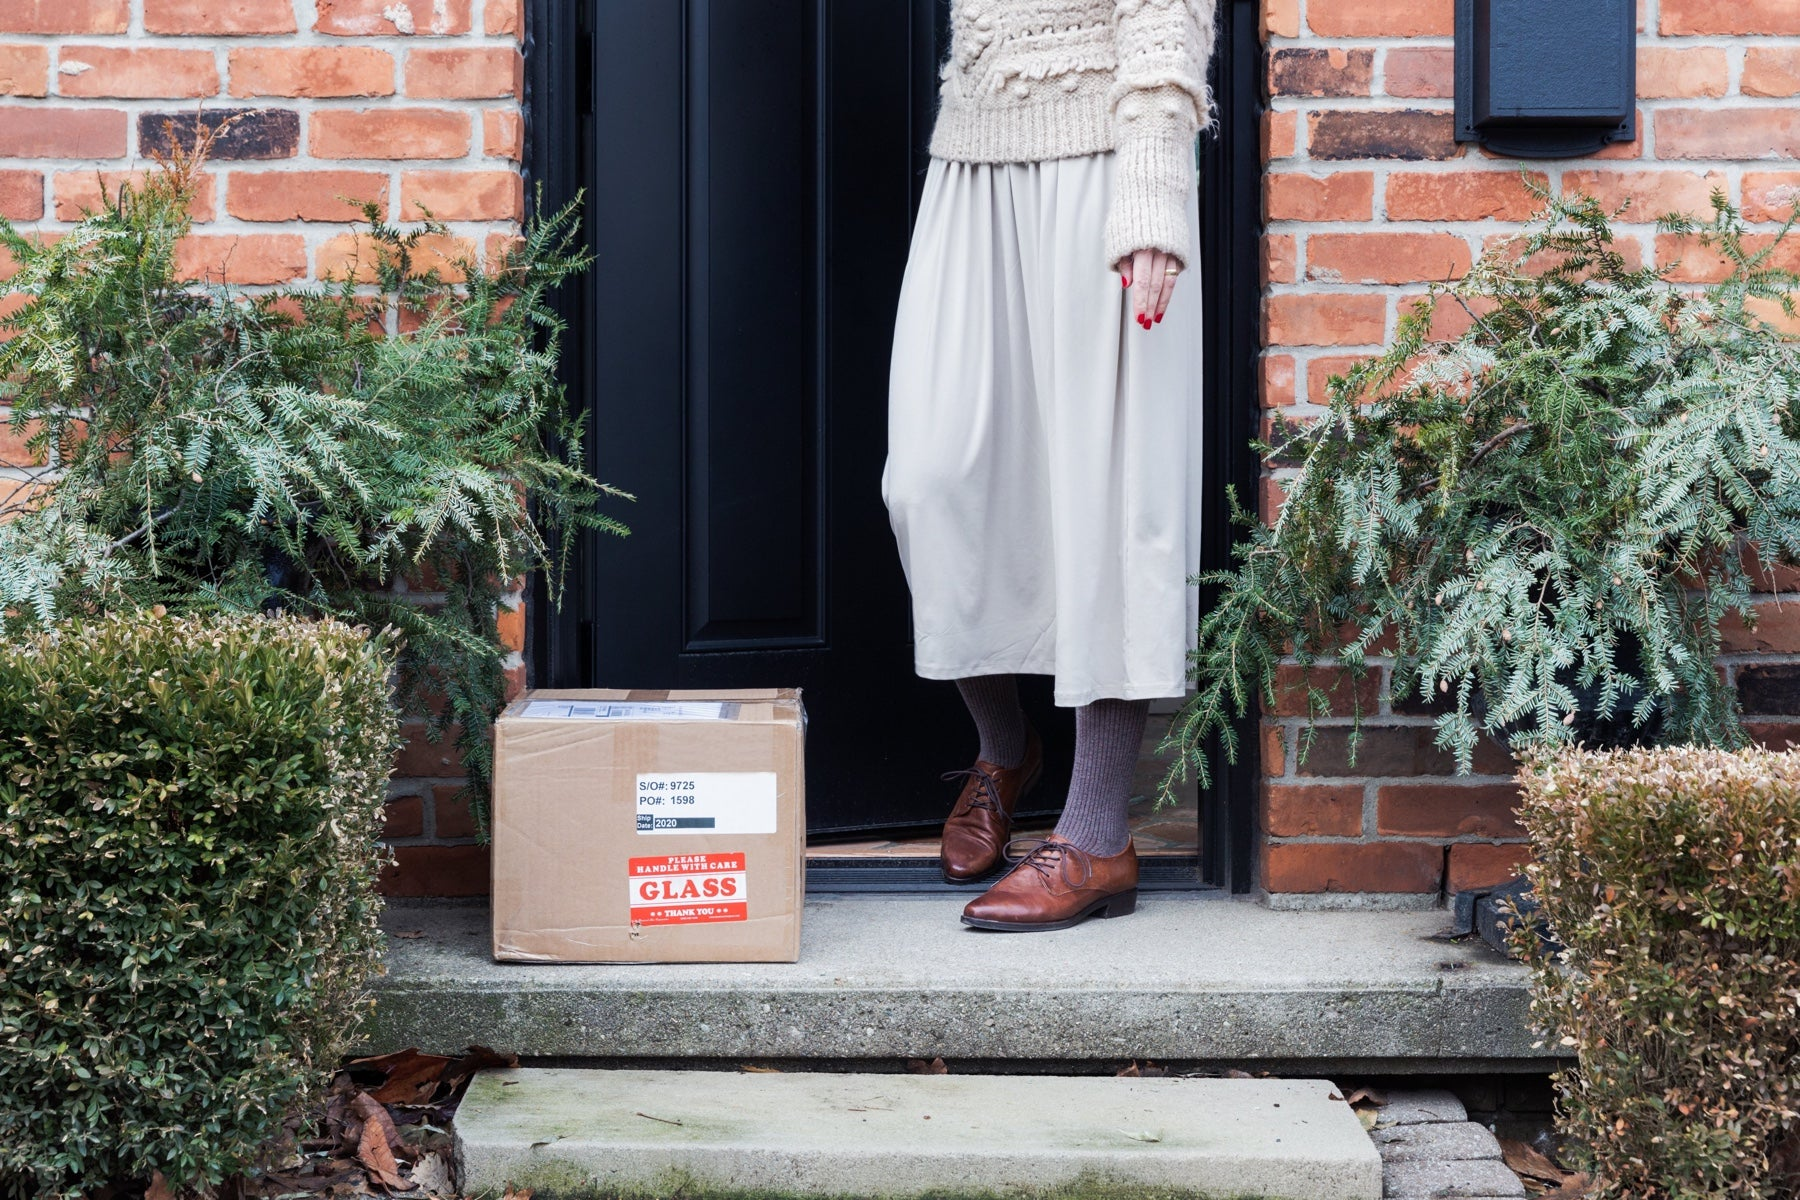 Woman stands at a front door flanked by bushes. A package waits for her on the stoop